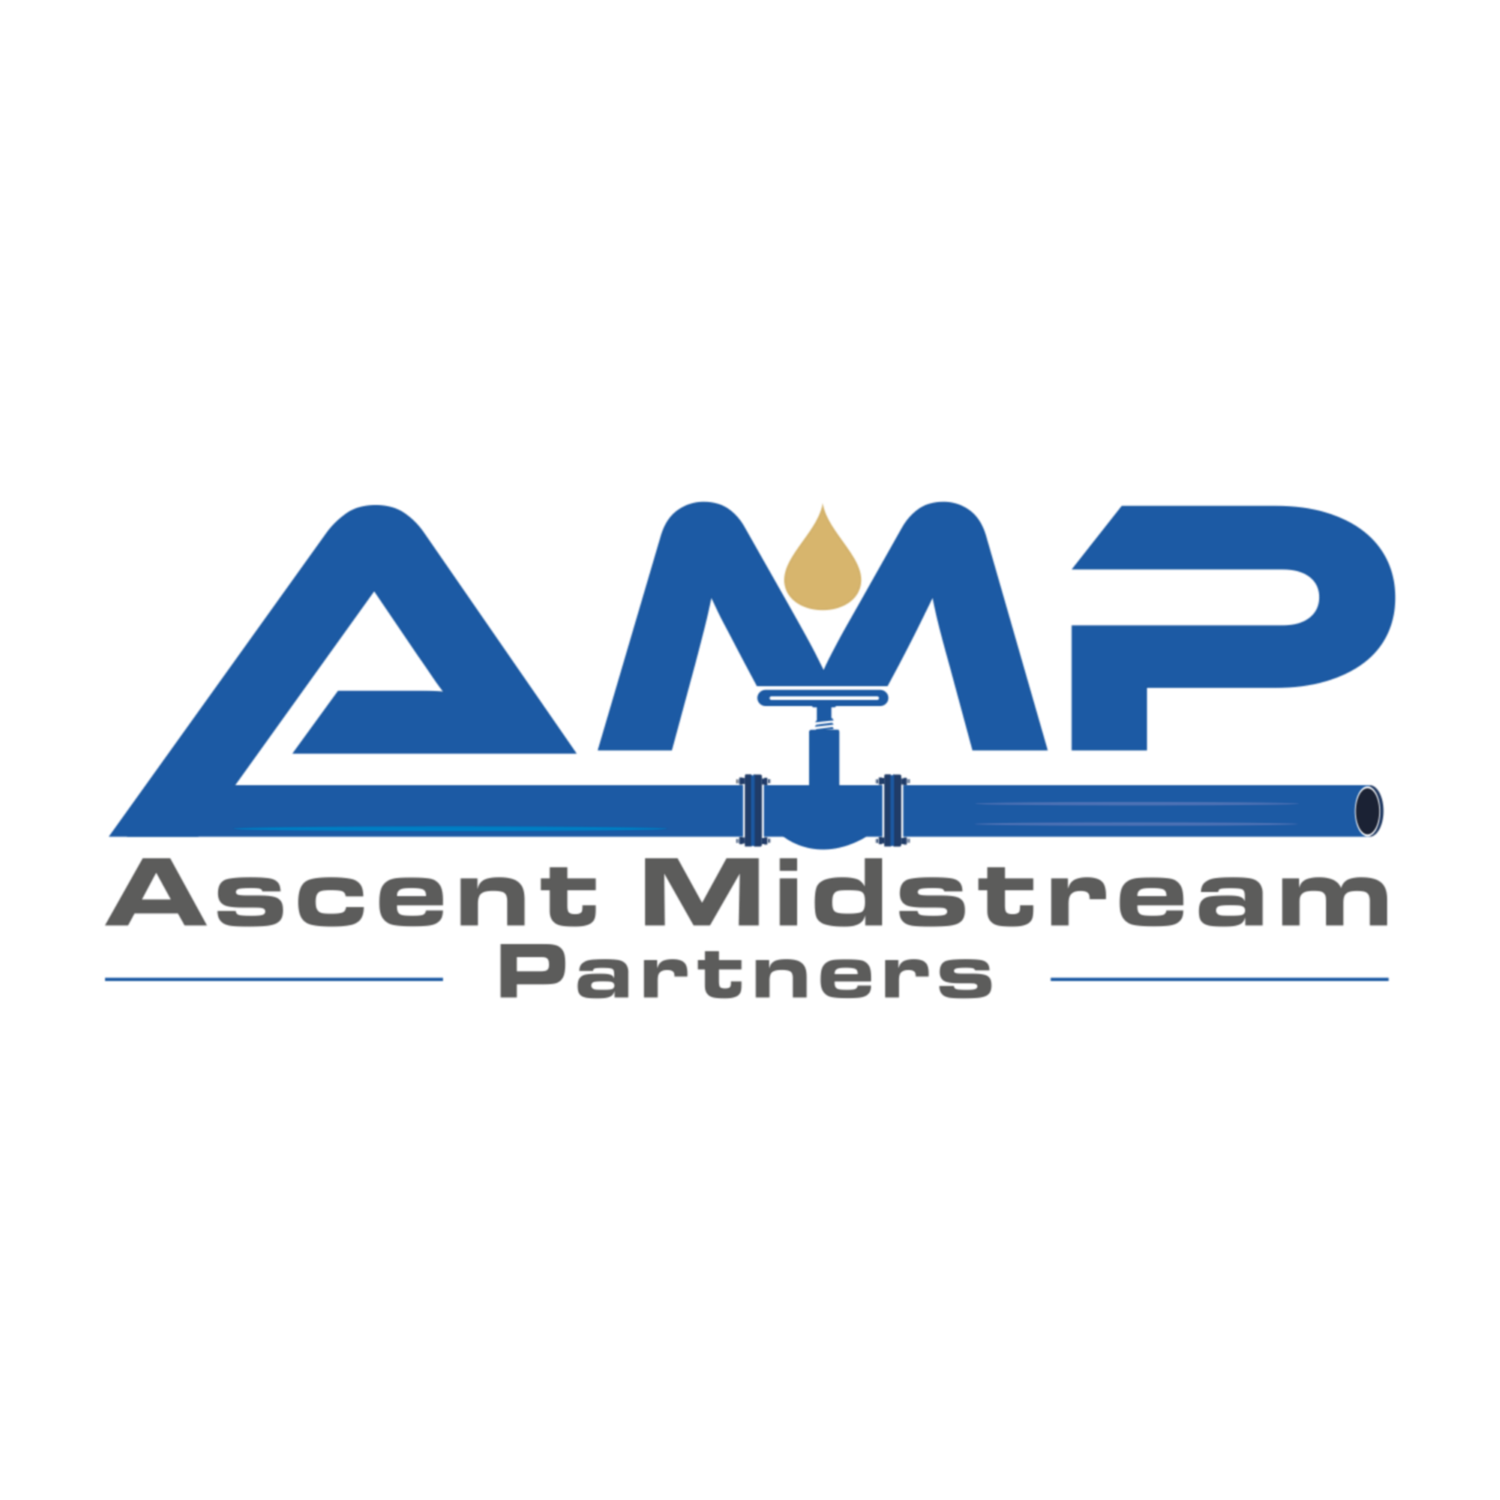 Ascent Midstream Partners